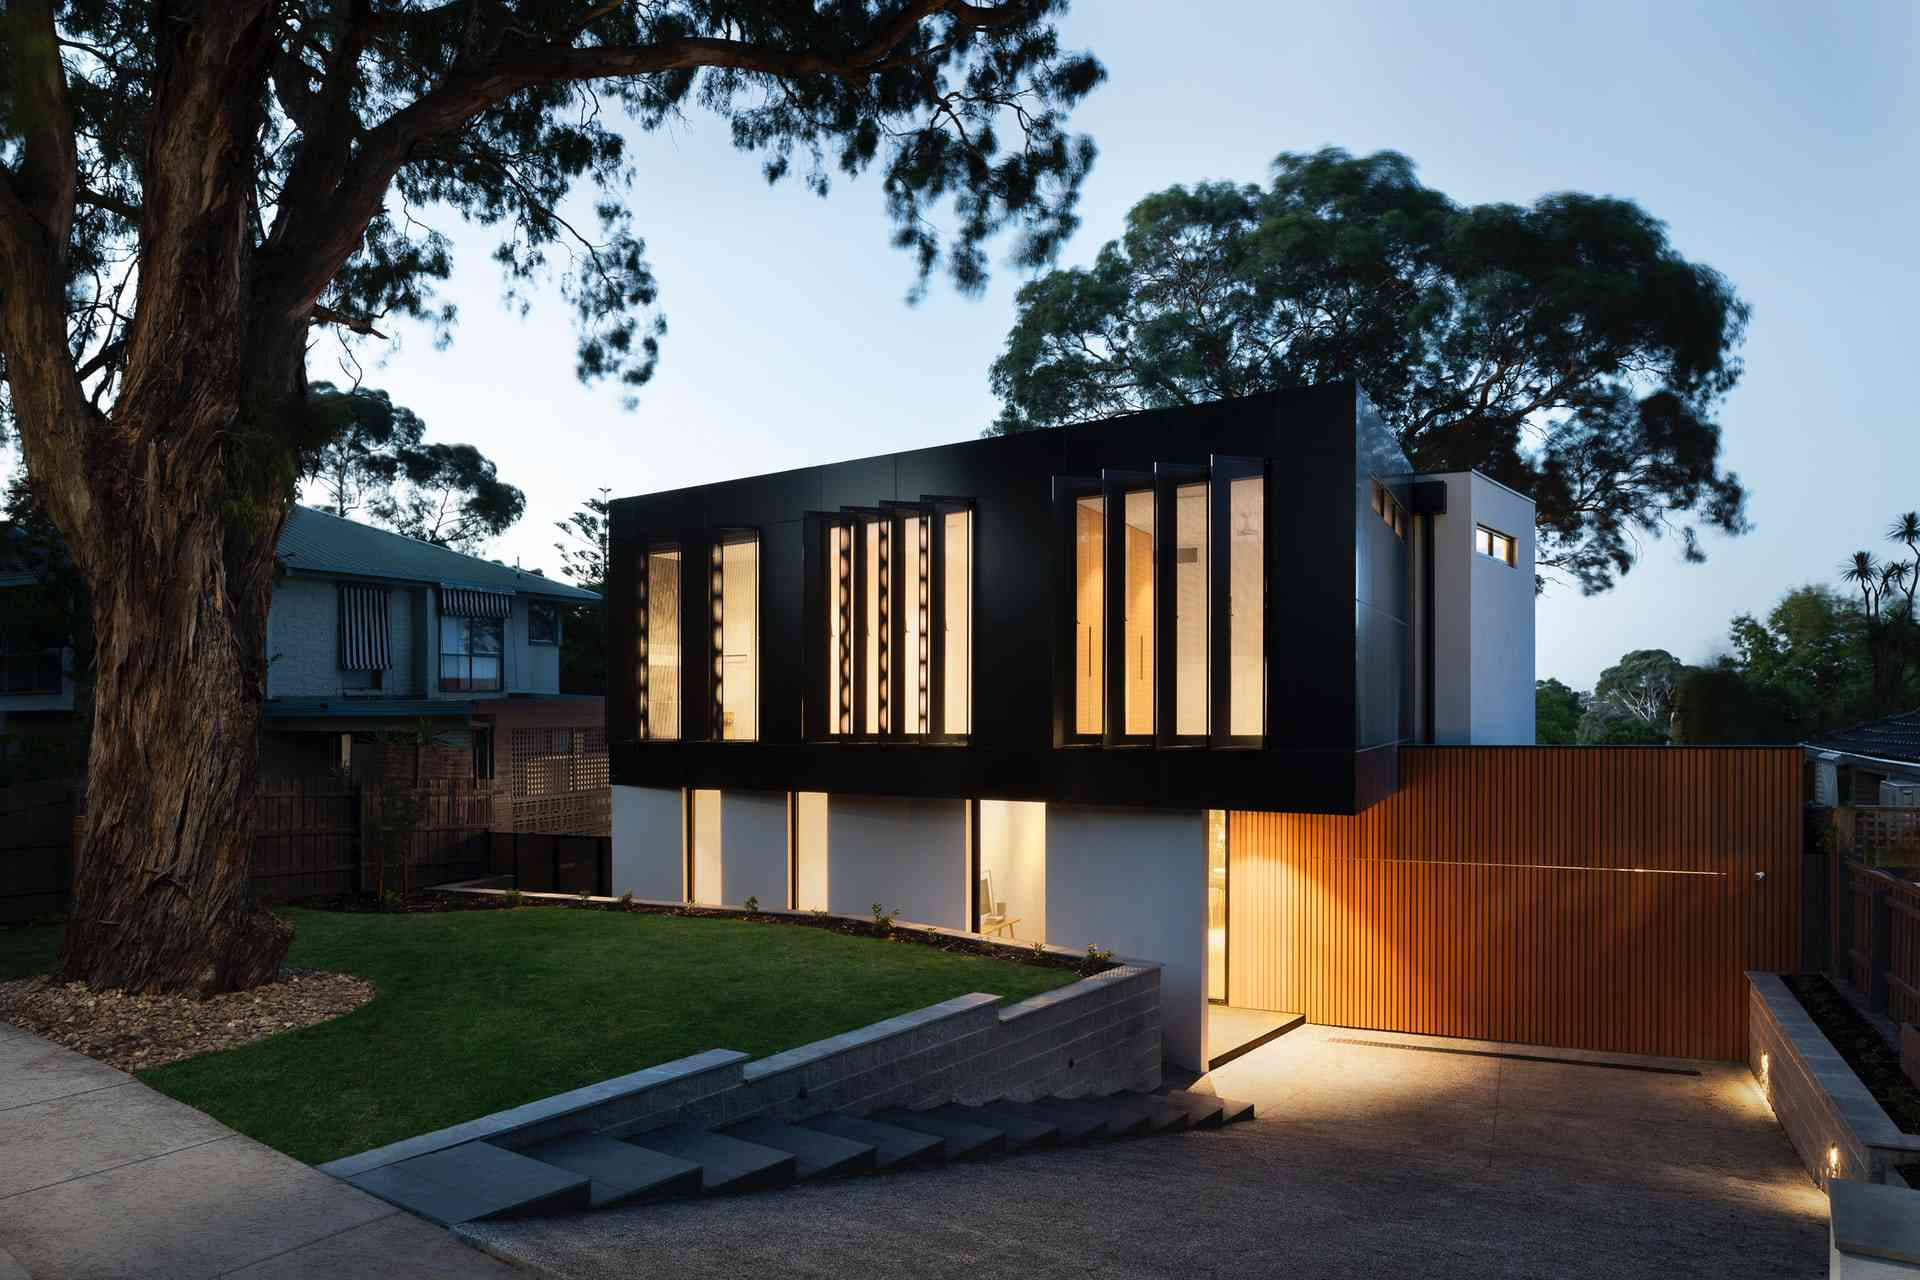 Modern architecturally designed home with a retaining wall contained front lawn